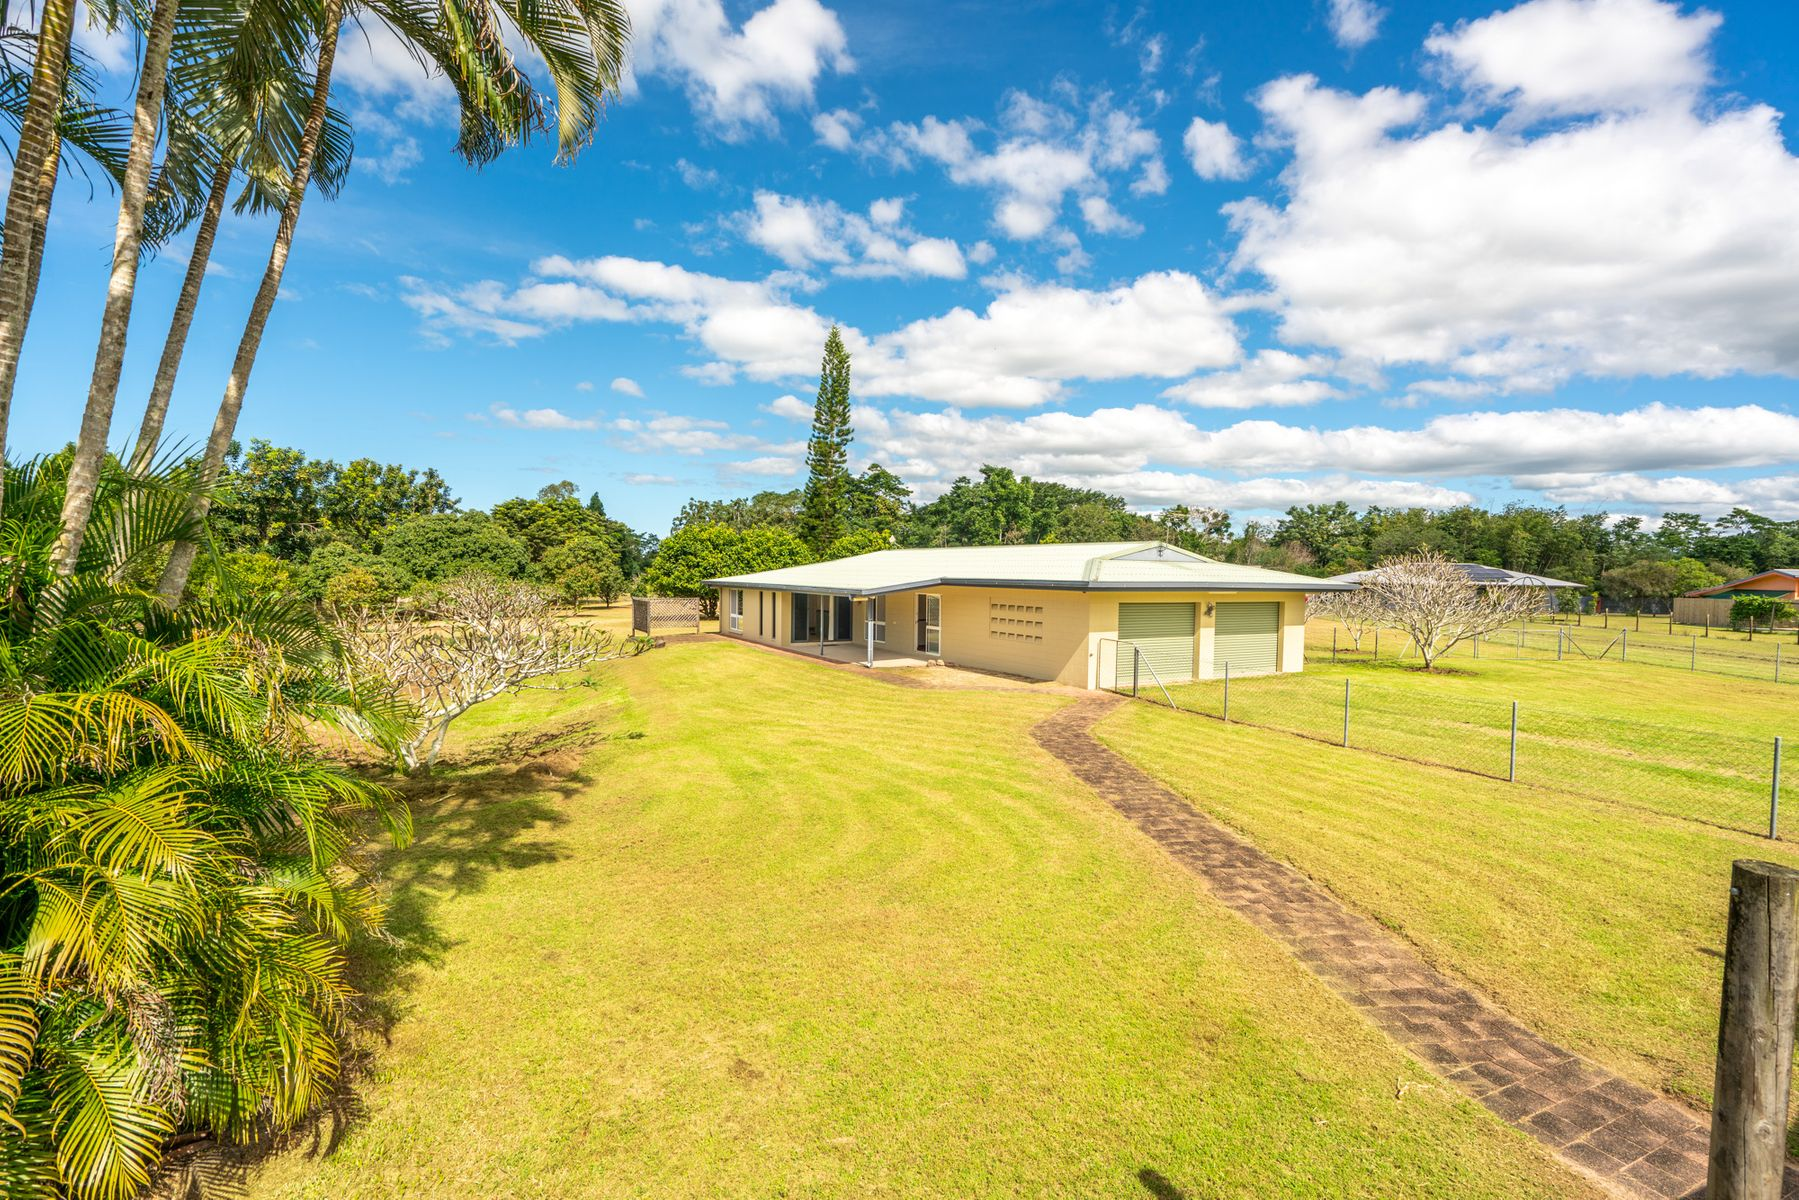 27 Martinuzzi Close, New Harbourline, QLD 4858